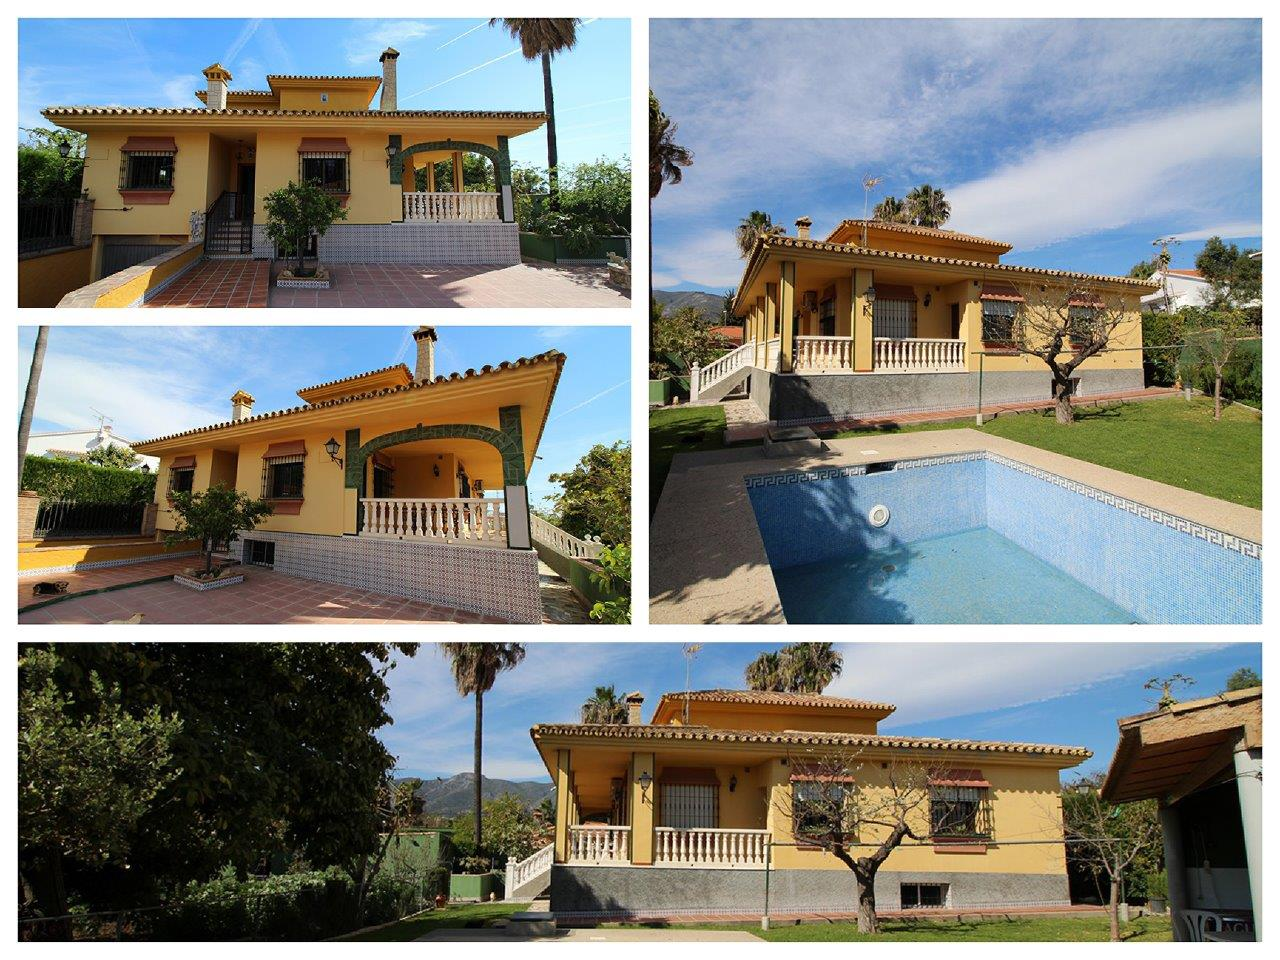 Villa in Churriana (Malaga) te koop